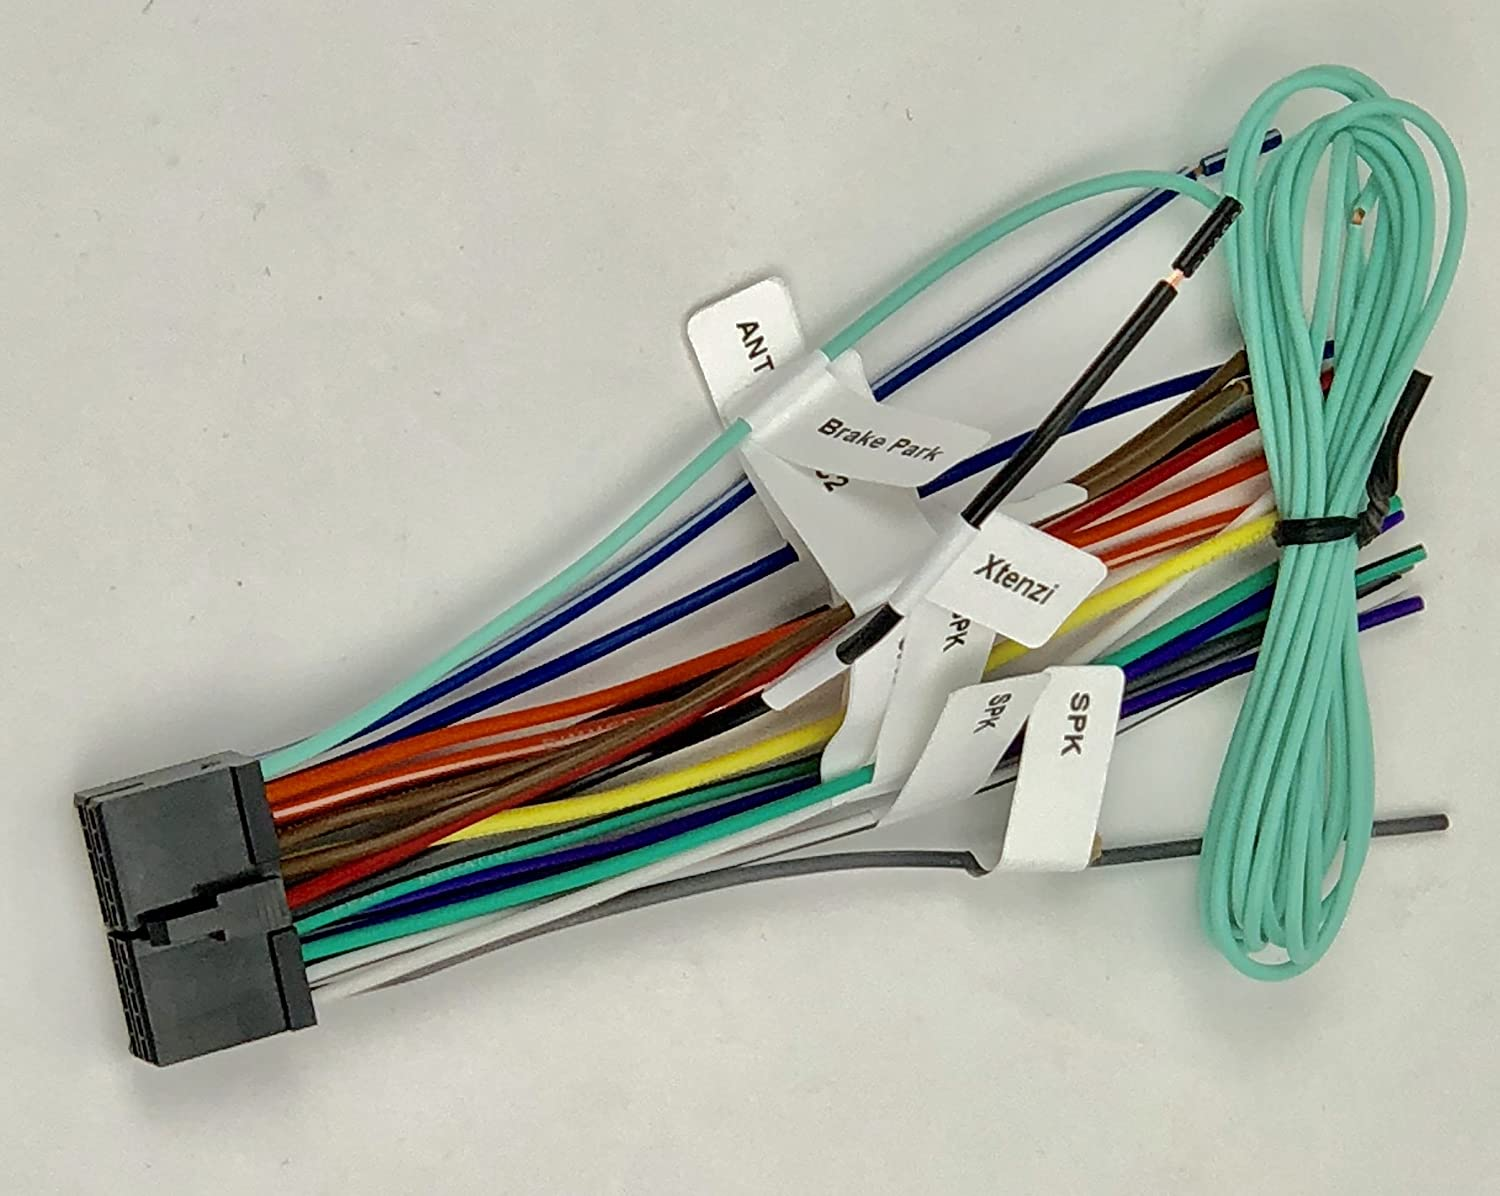 Power Wire Harness | Schematic Diagram on pac harness, weasel harness, aftermarket engine wiring harness, hitachi harness, delta harness,